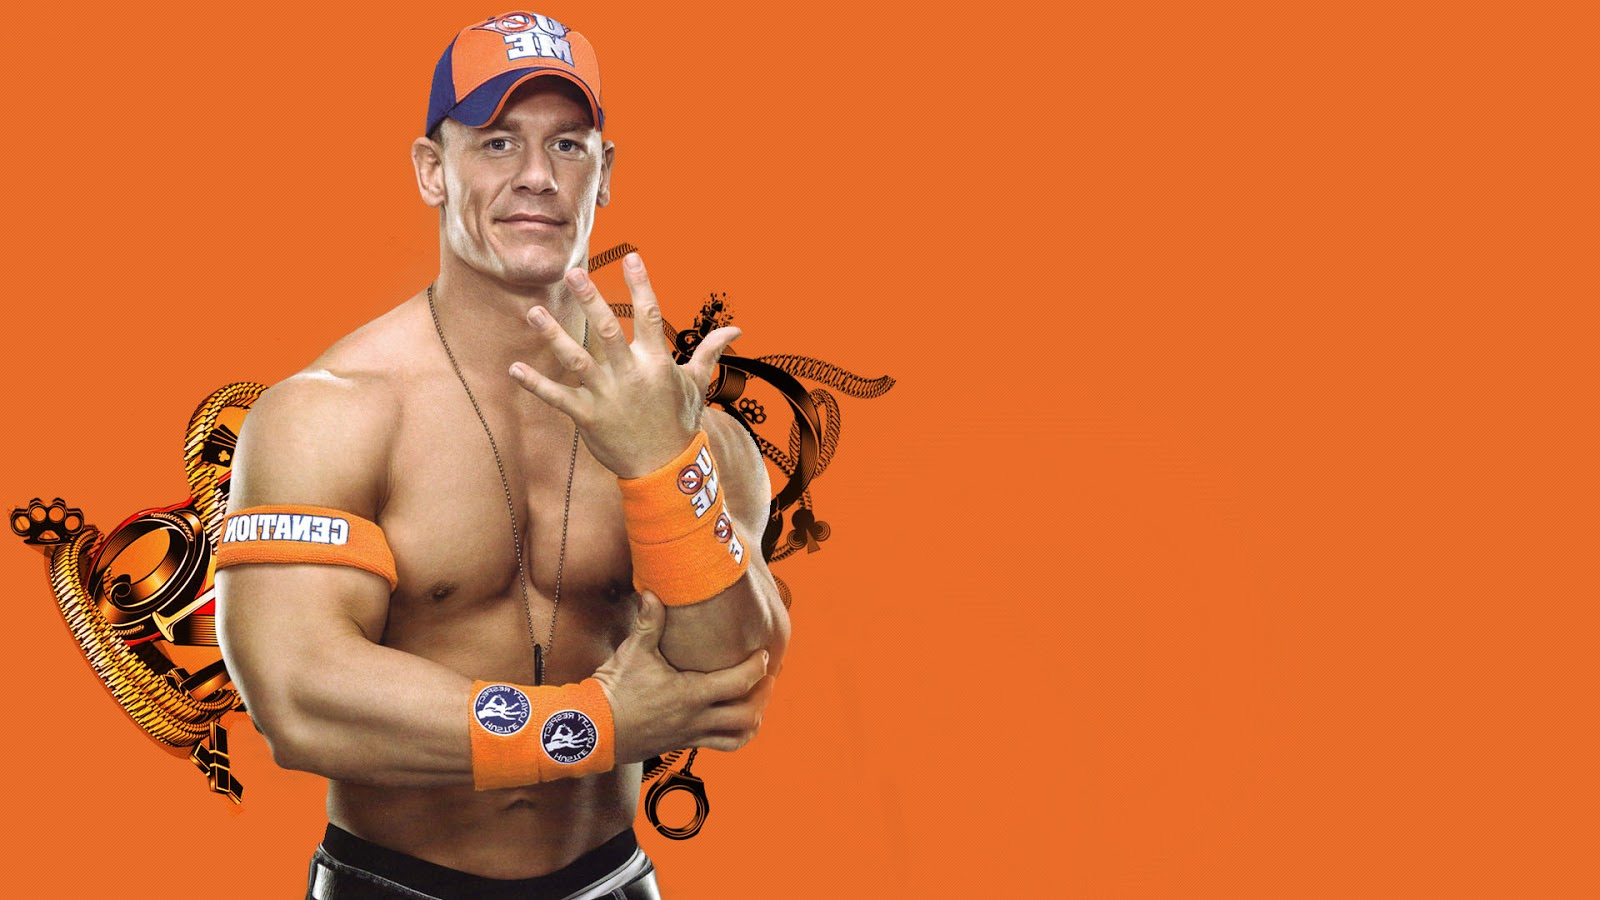 WWE Superstar John Cena in you Cant See Me pose Wallpaper